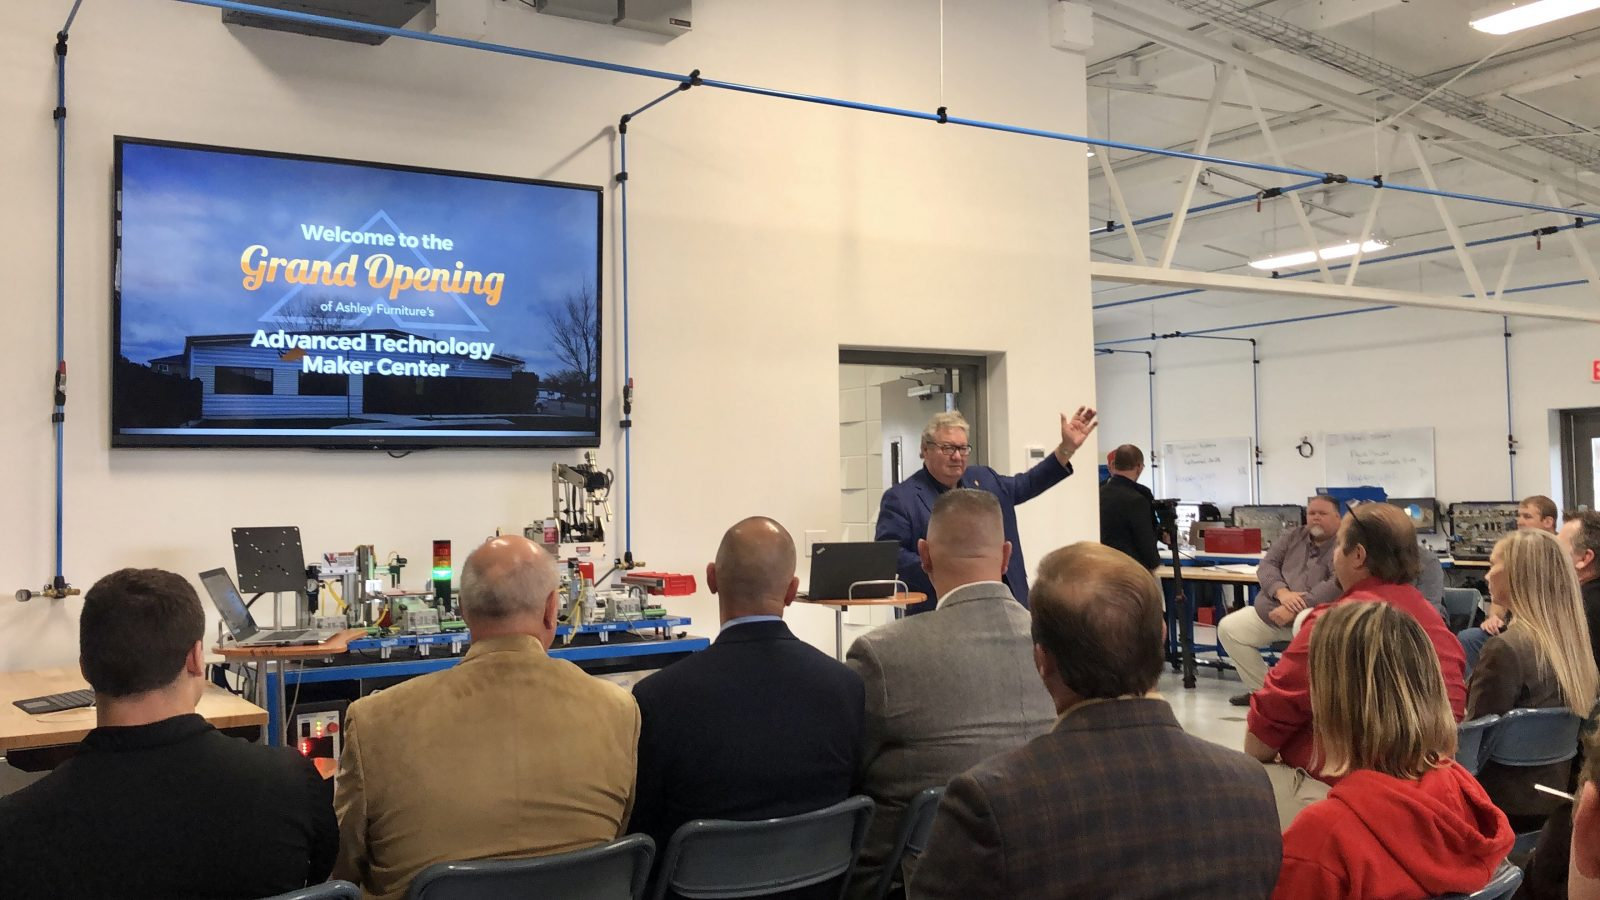 Ron Wanek, Founder & Chairman of Ashley Furniture, addresses the crowd at the Advanced Technology Maker Center